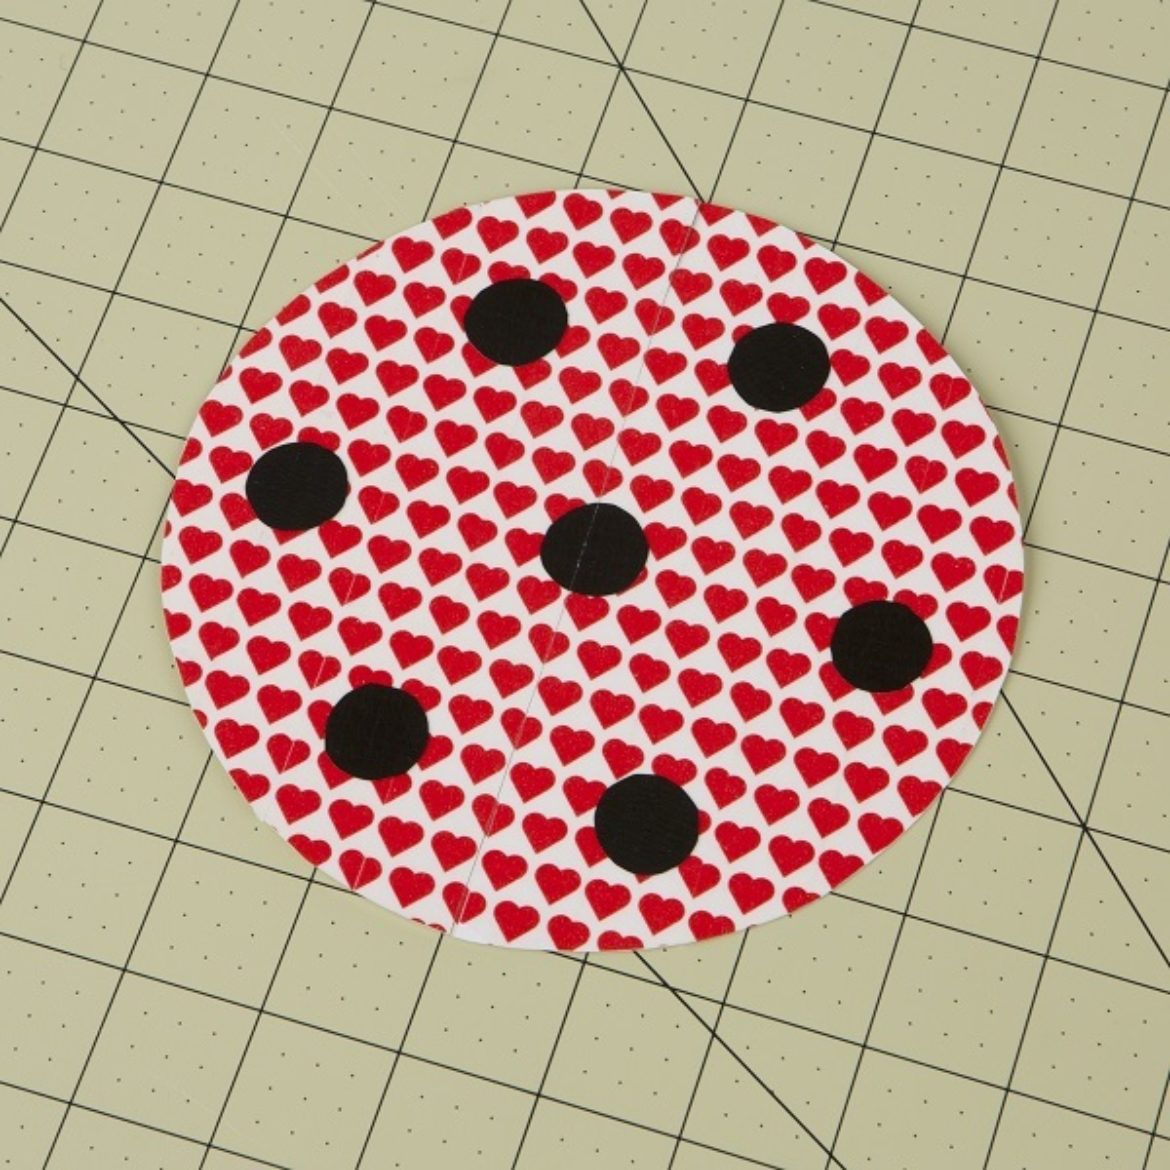 Spots from previous step attached to the circle from step 2